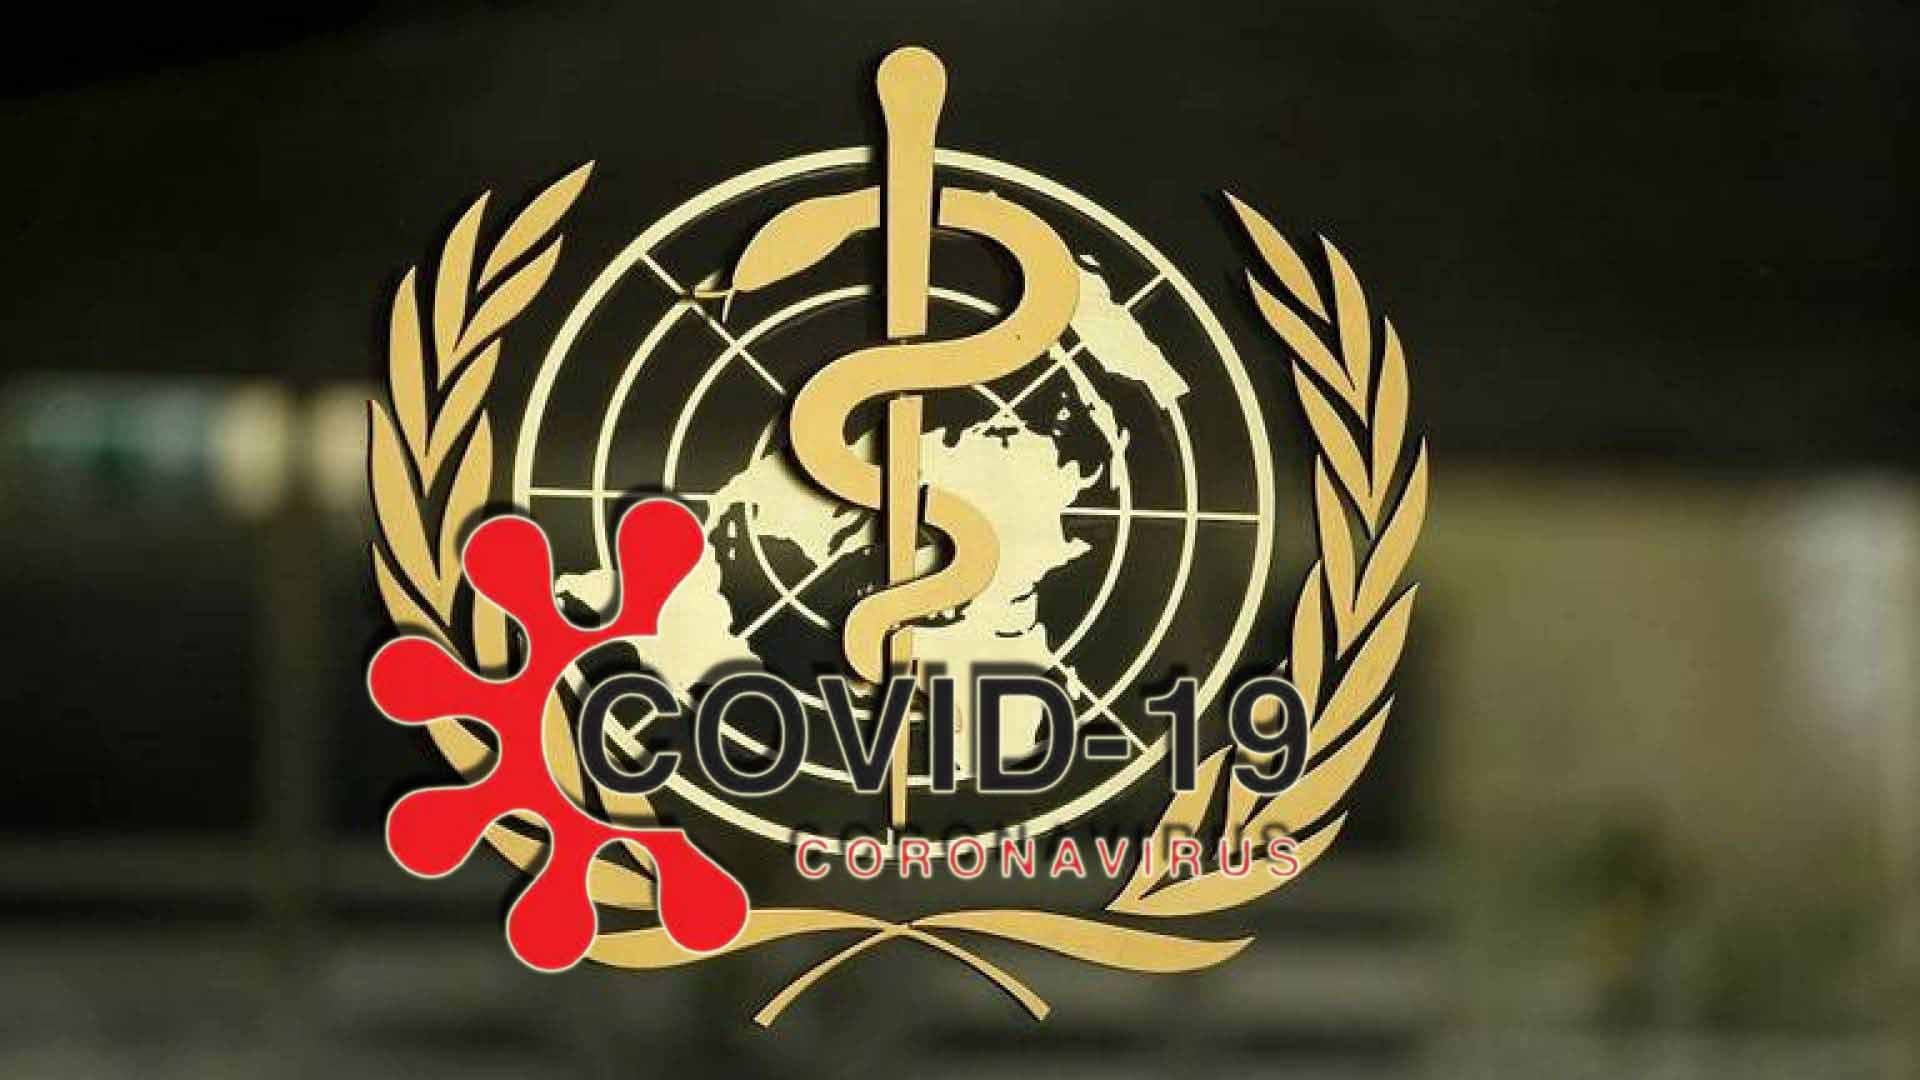 Indian COVID-19 strain detected in 53 countries